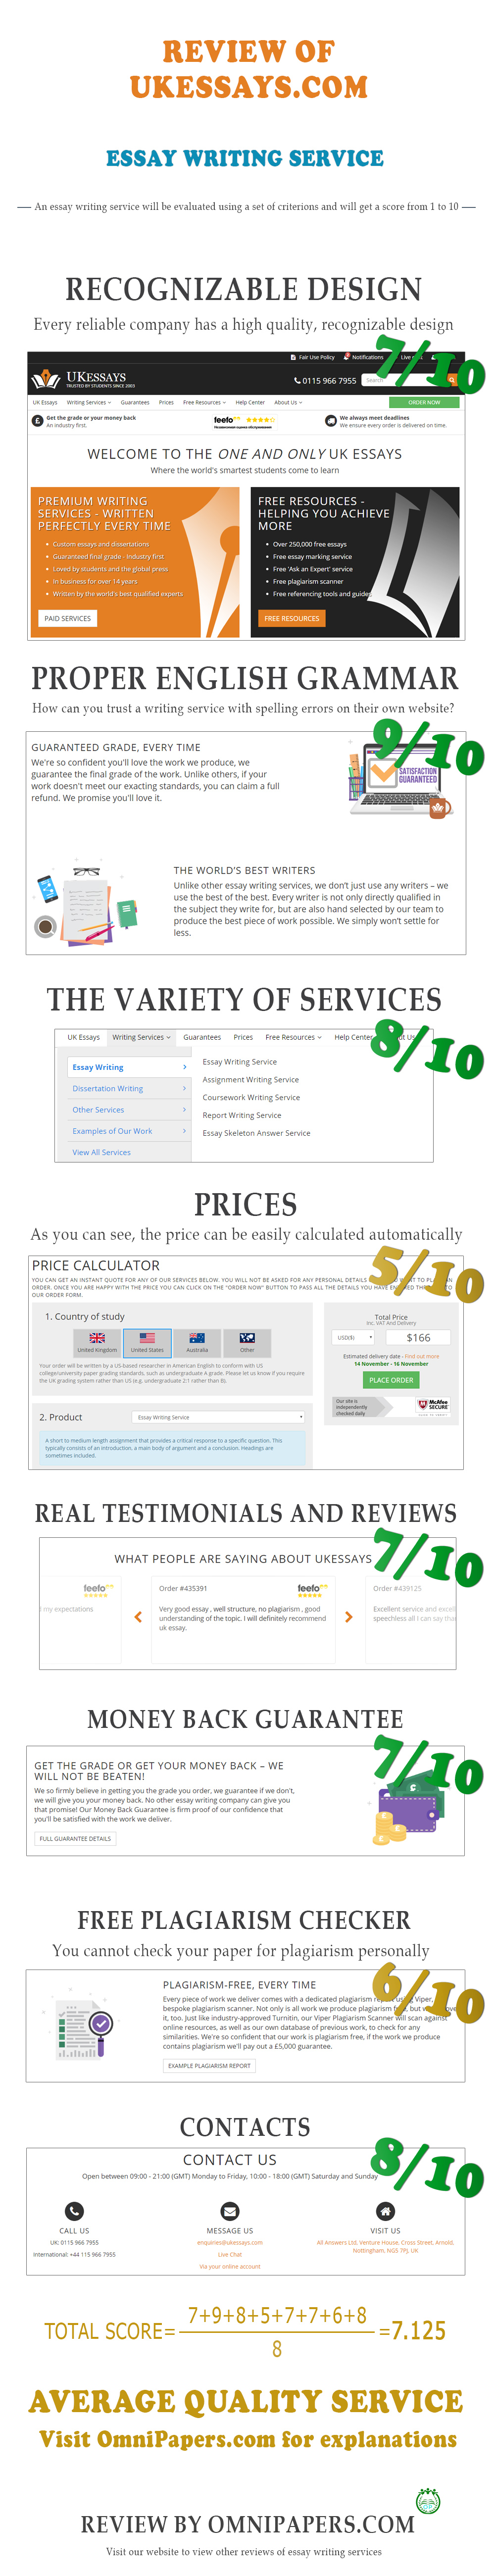 ukessays com review score com infographic review of ukessays